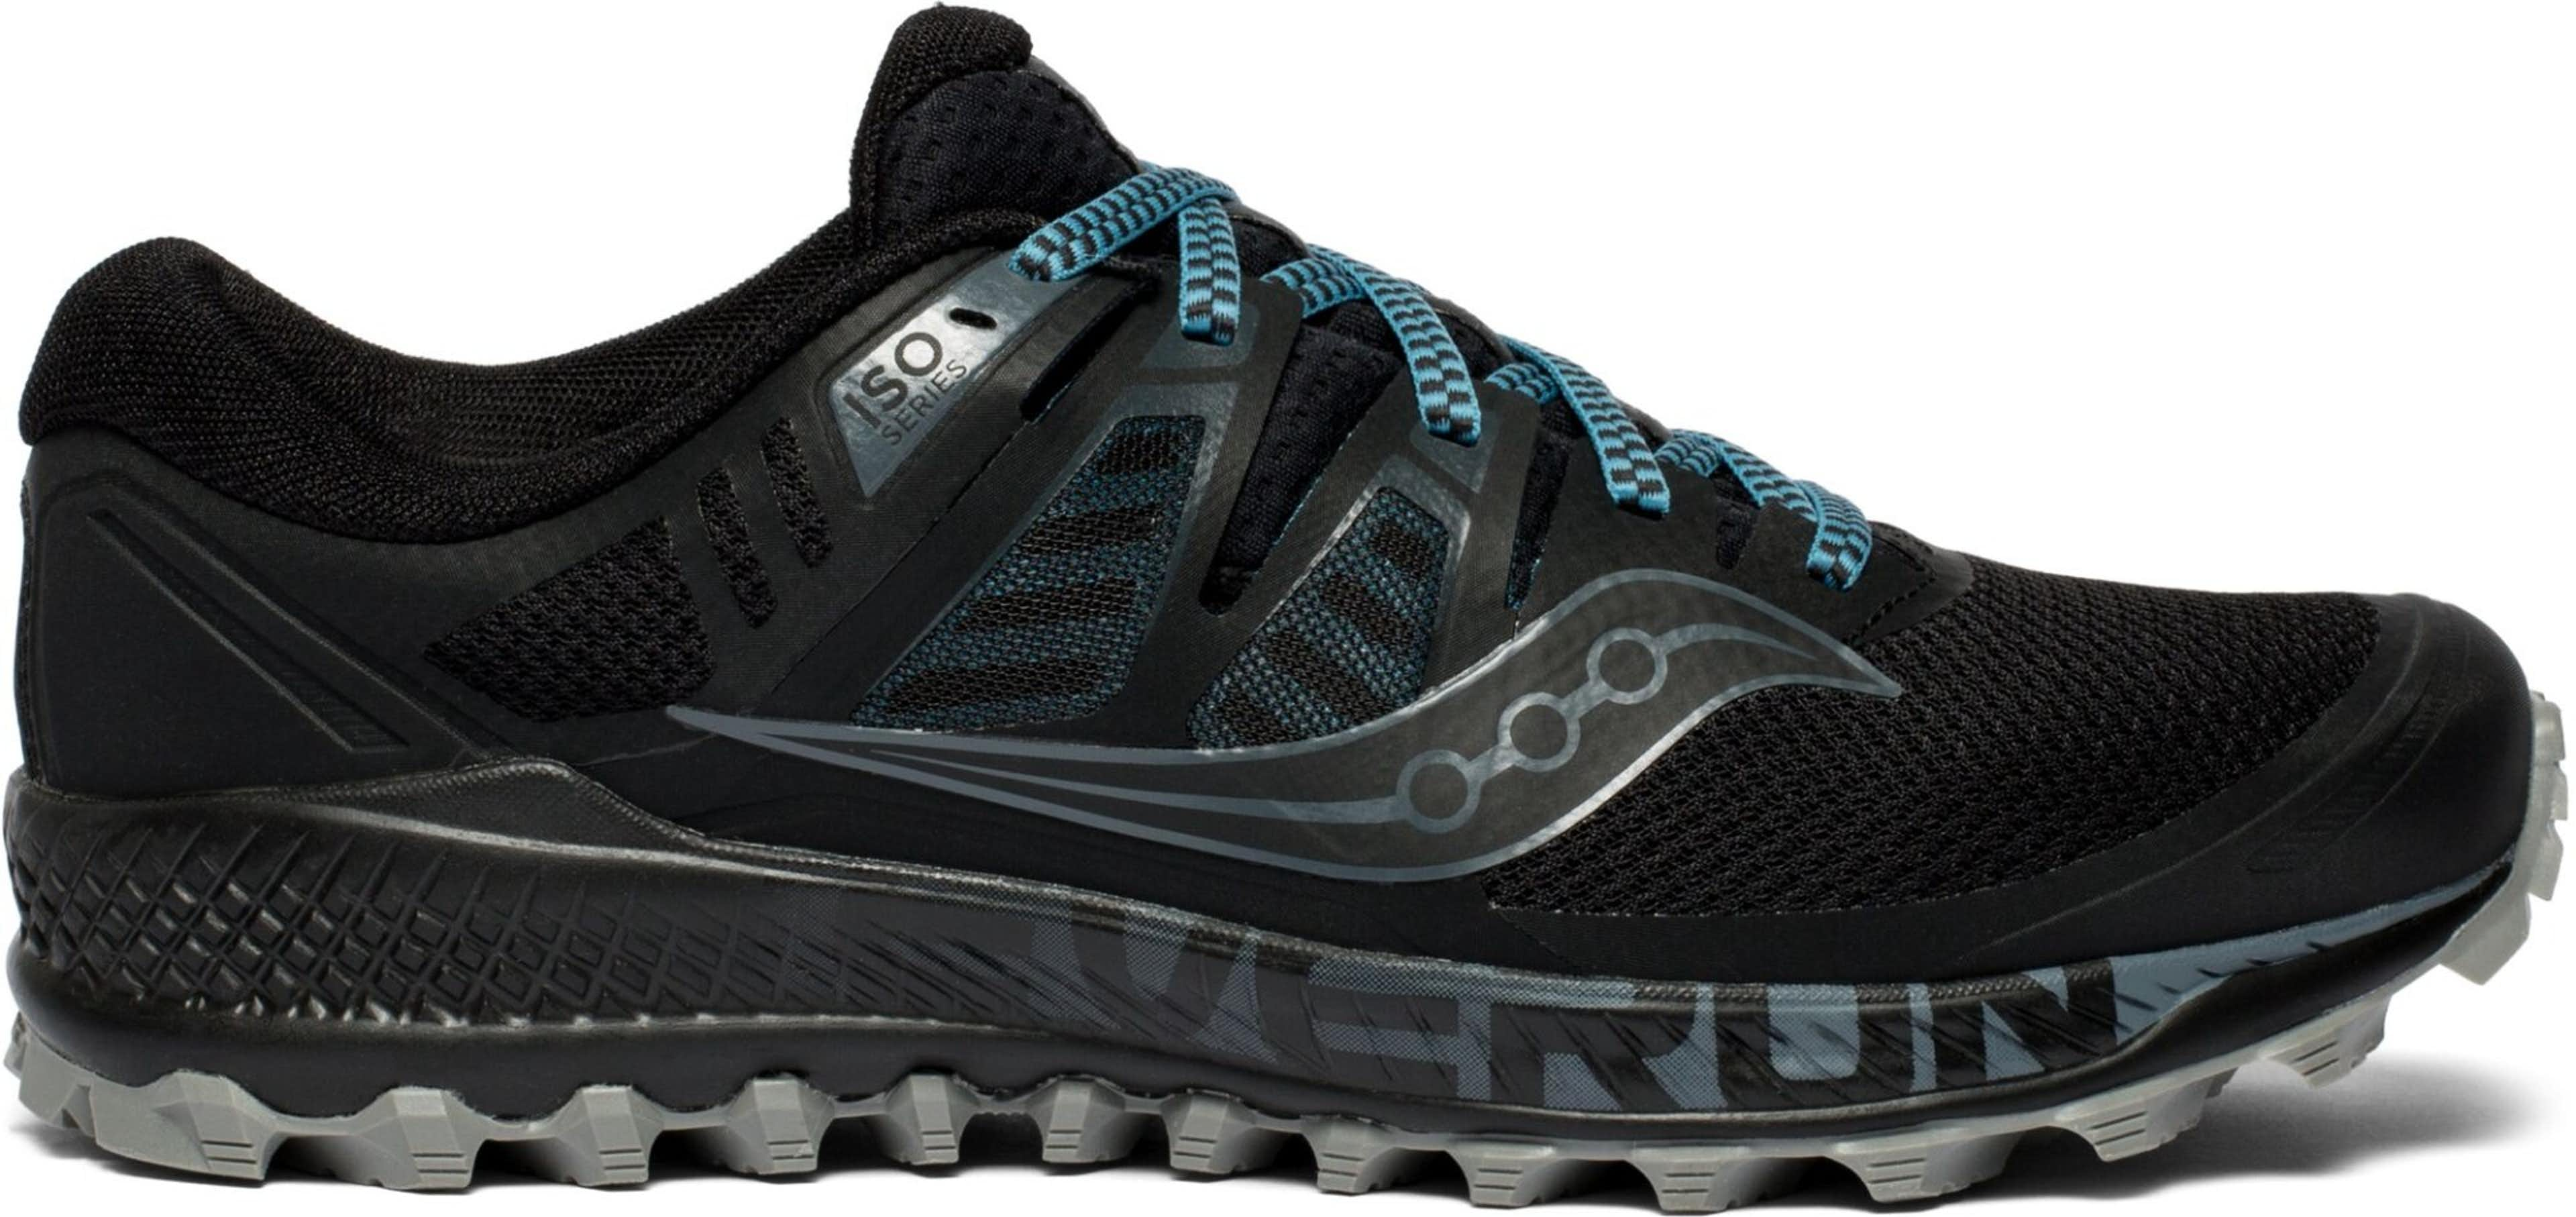 b8ca05f0771 Saucony Men s Peregrine ISO Trail Running Shoes